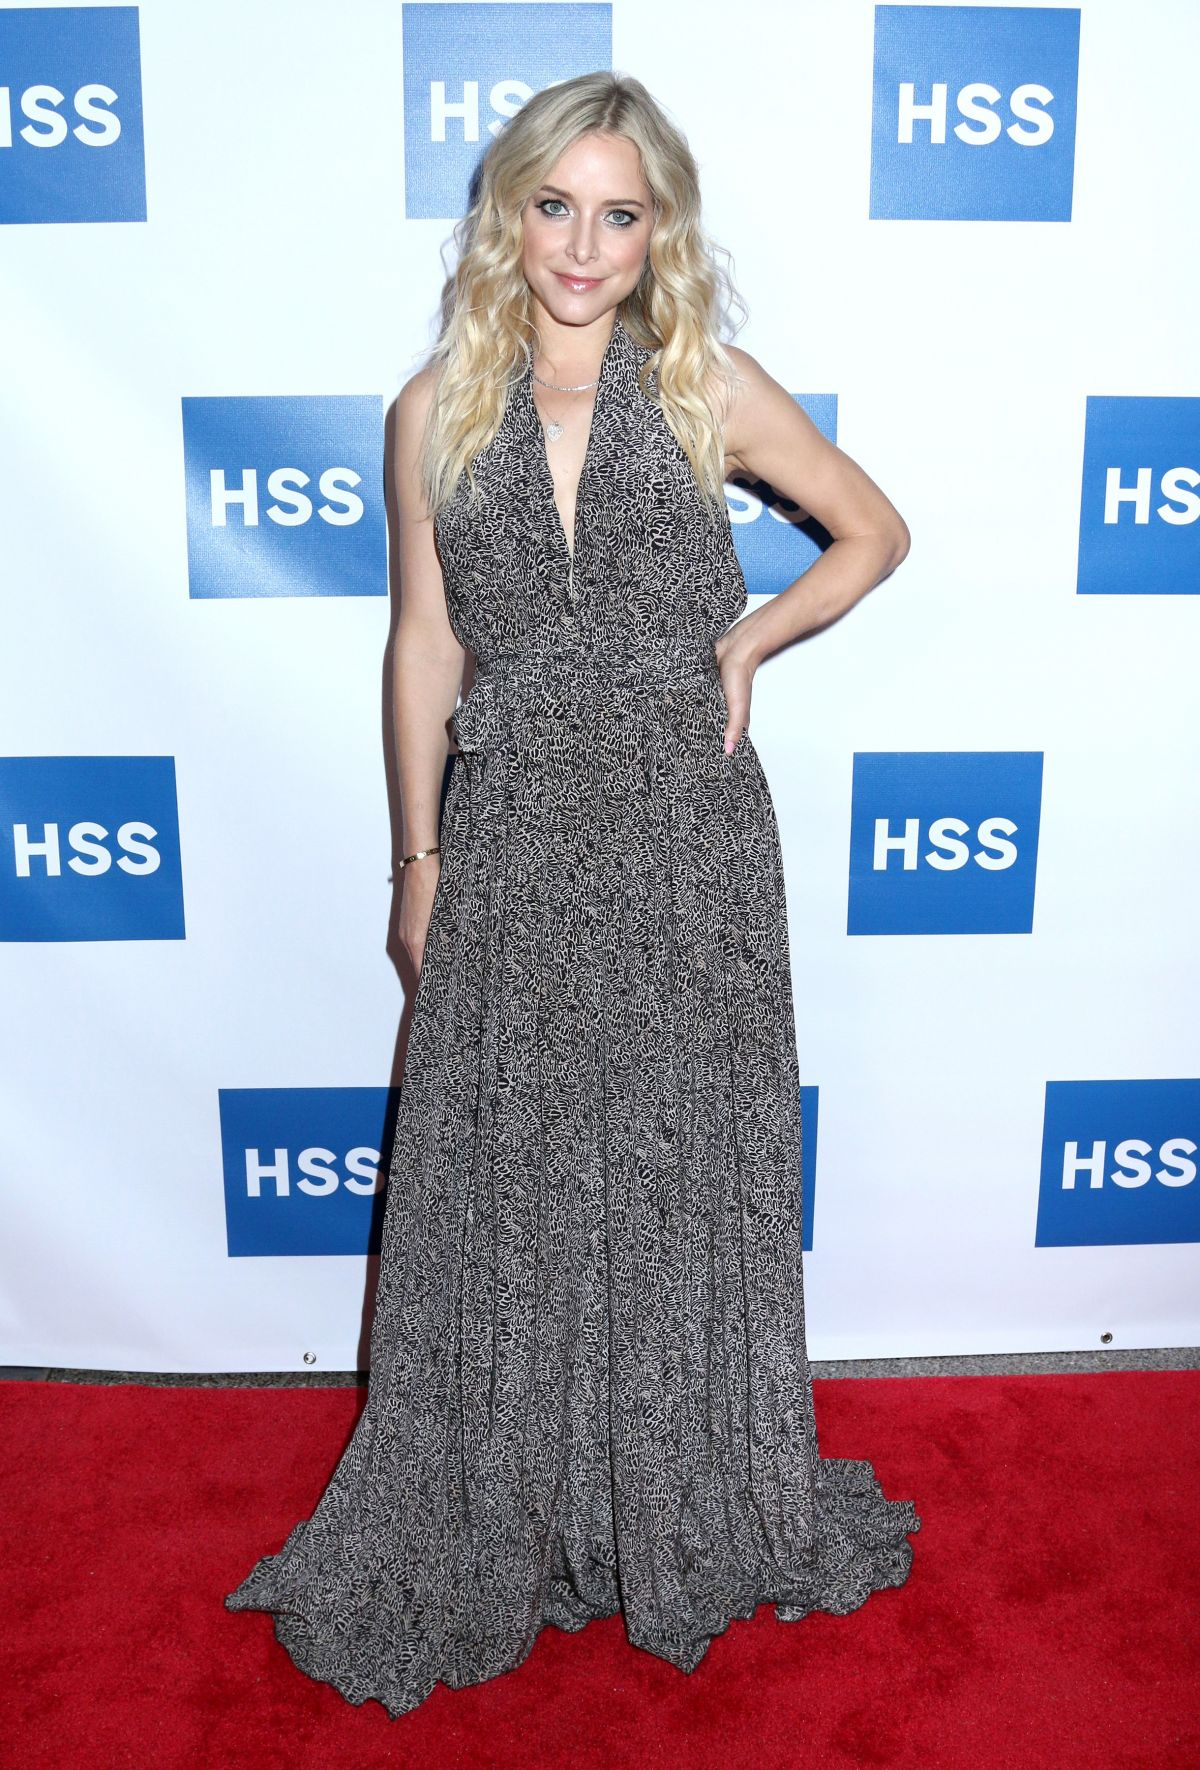 JENNY MOLLEN at Hospital for Special Surgery 35th Annual